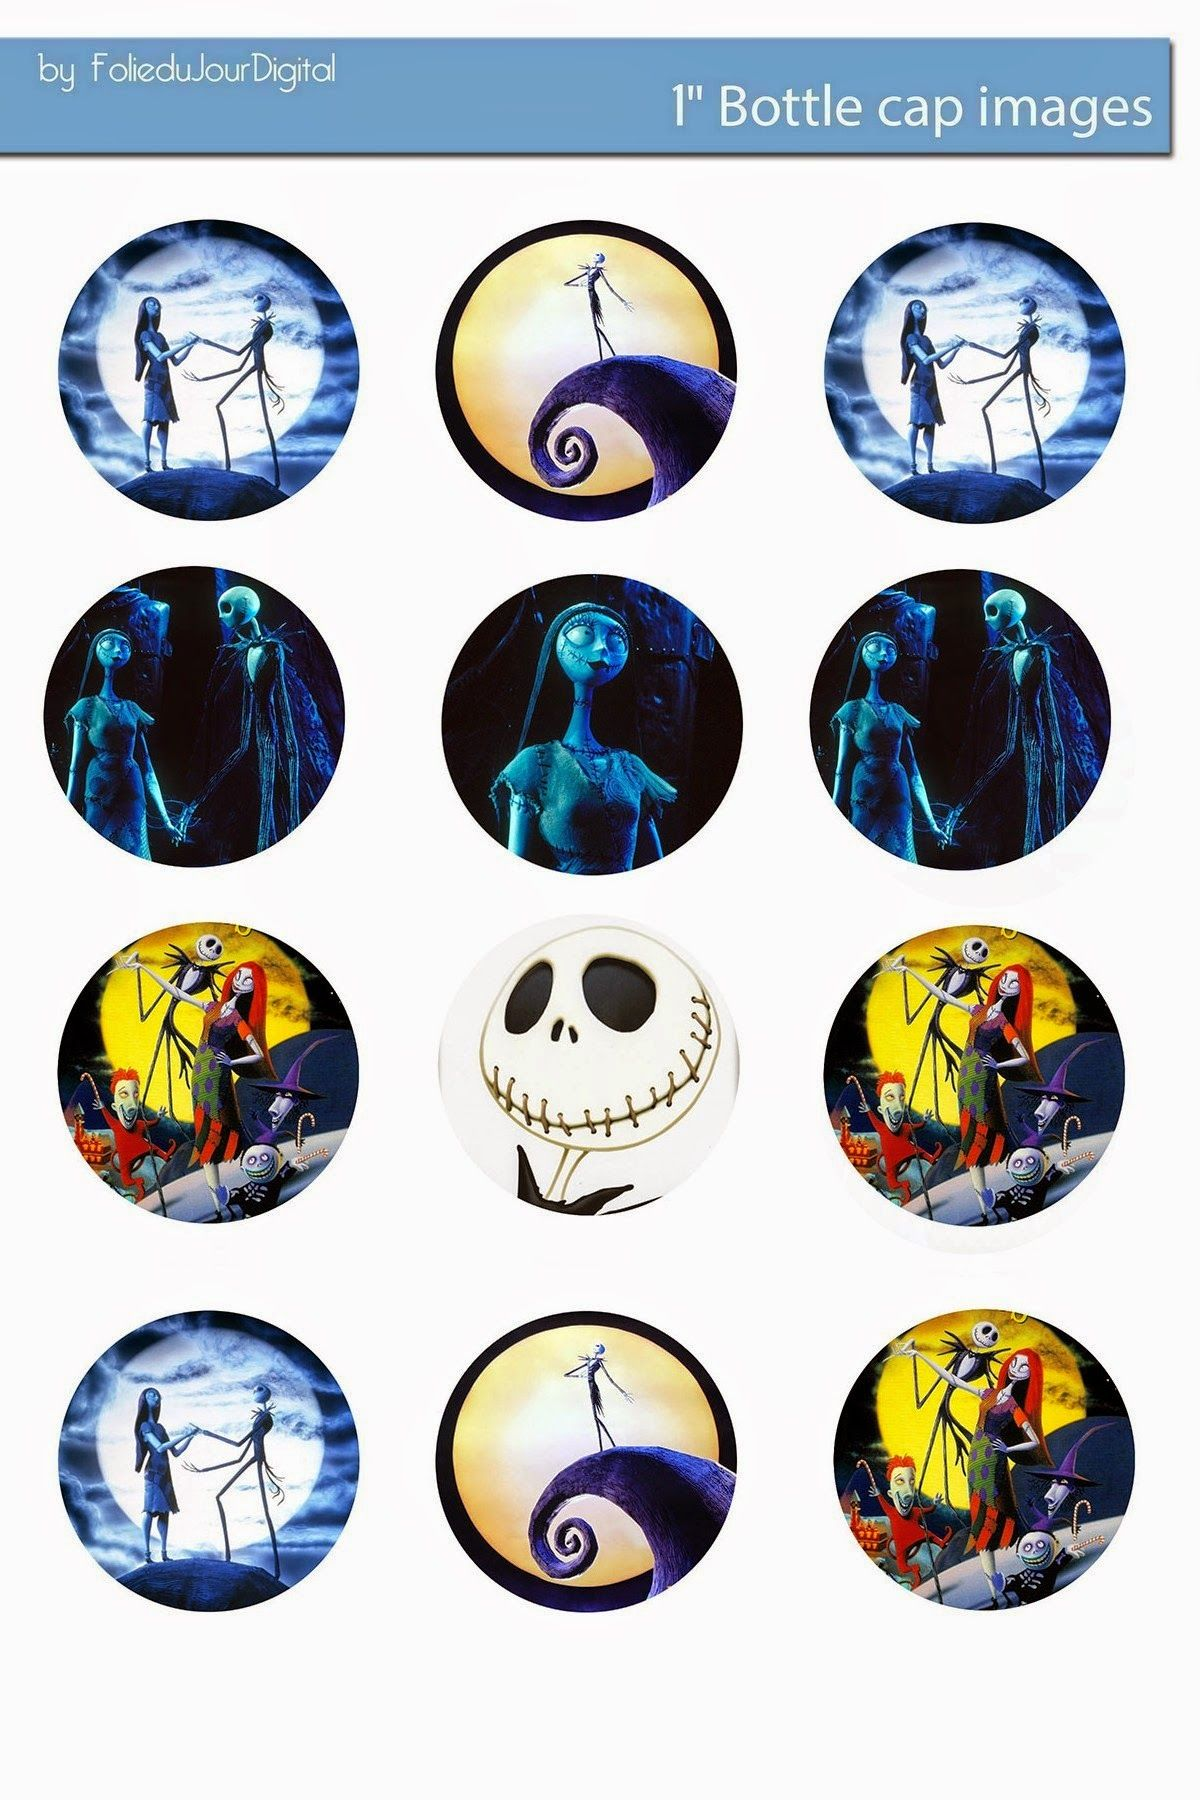 Free Bottle Cap Images: Free The Nightmare before Christmas digital bottle...